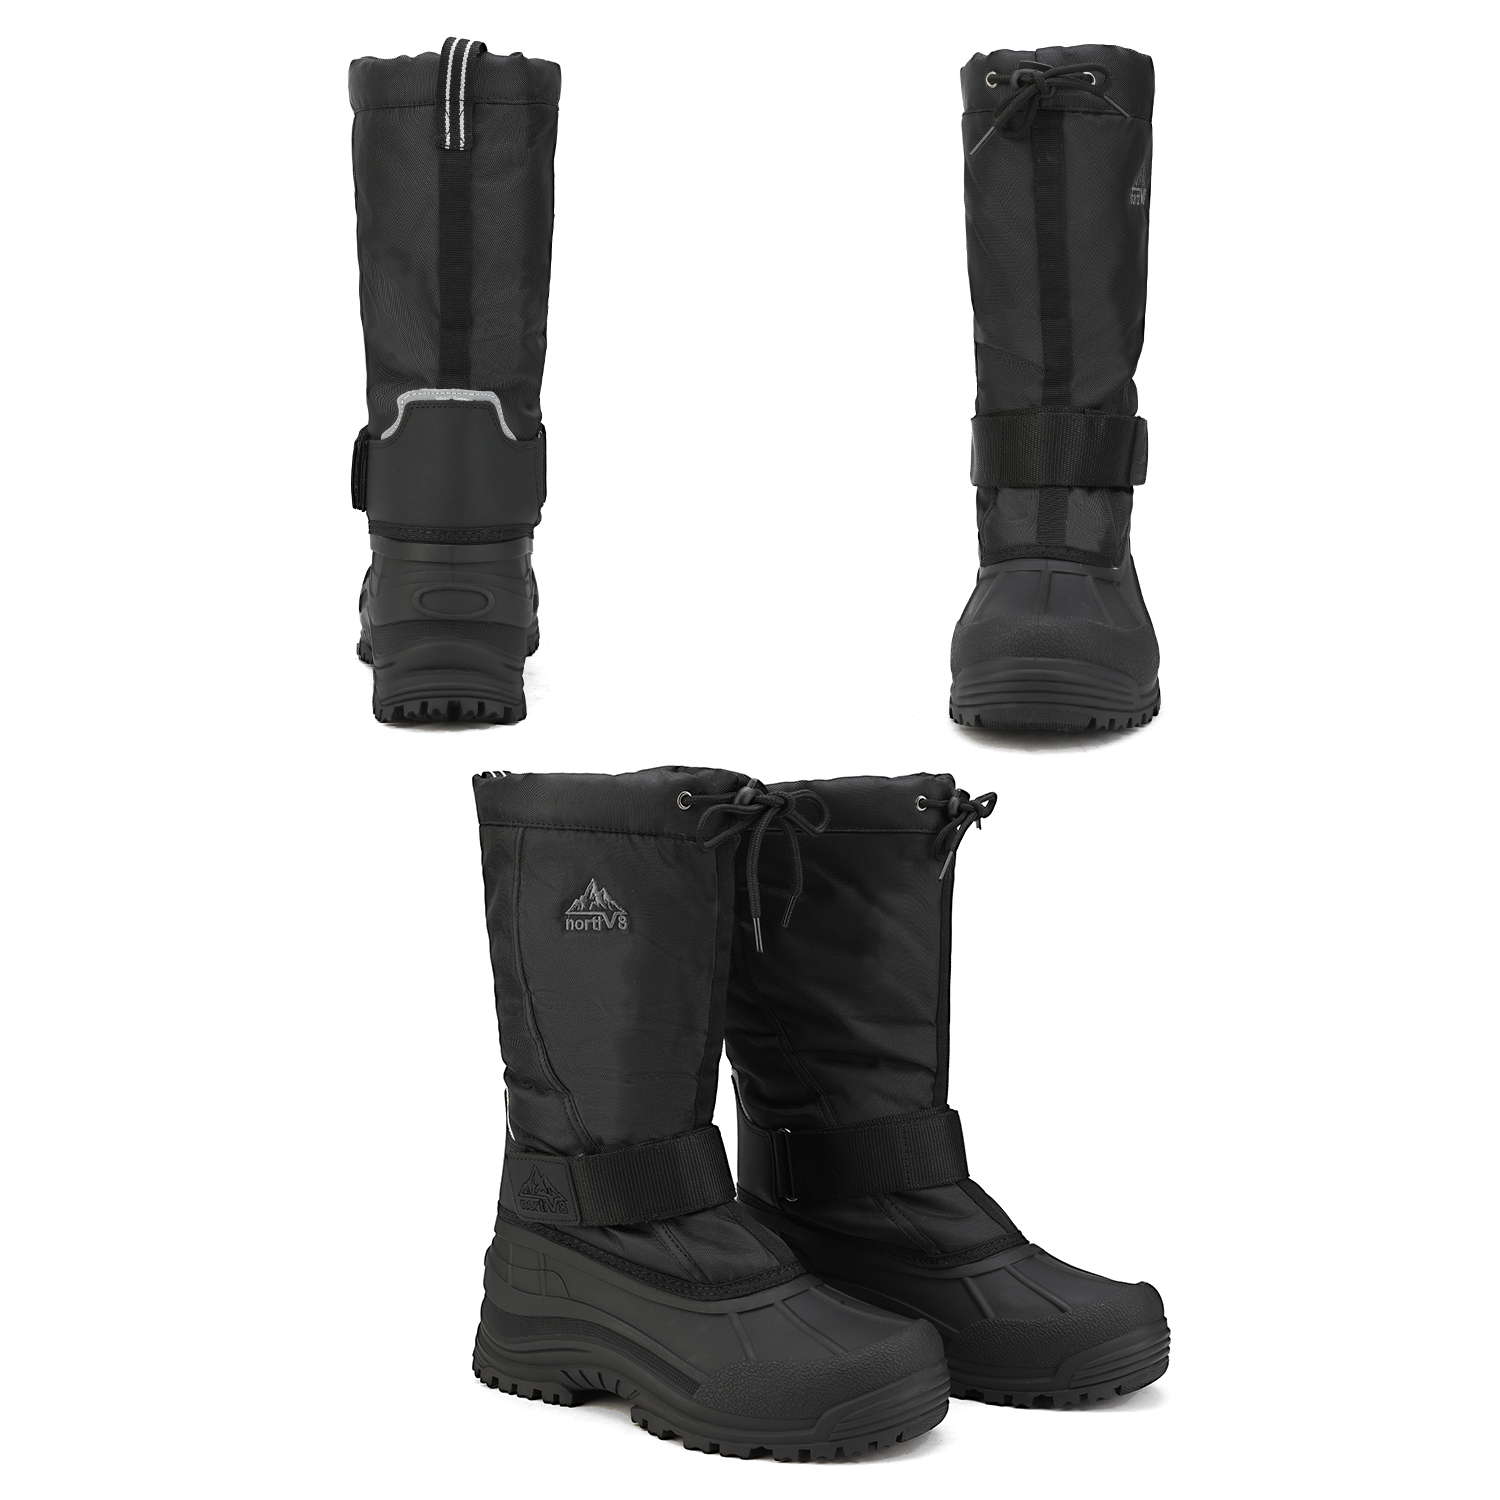 NORTIV-8-Men-039-s-Winter-Snow-Boots-Waterproof-Warm-Thermolite-Outdoor-Hiking-Boots thumbnail 10